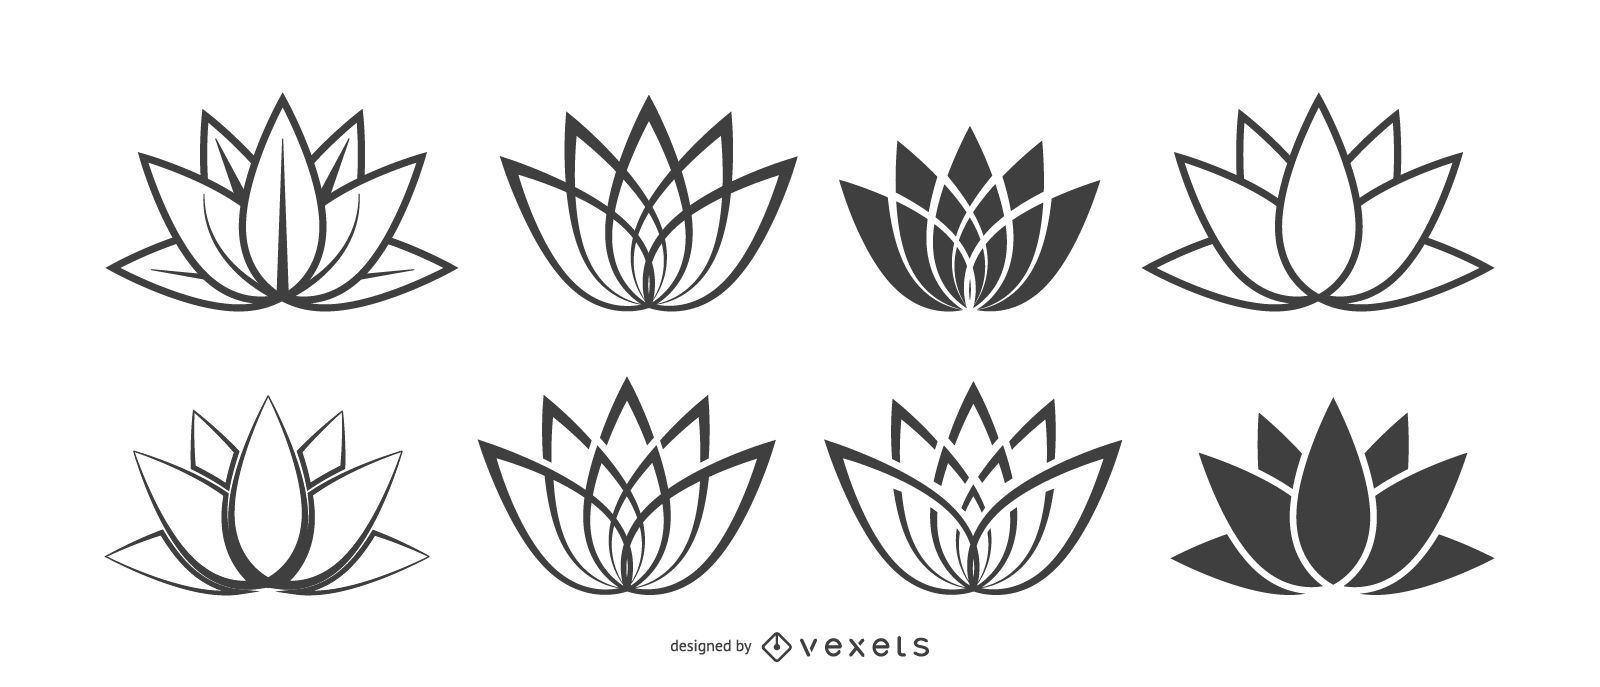 Lotus flower icons set vector download image user izmirmasajfo